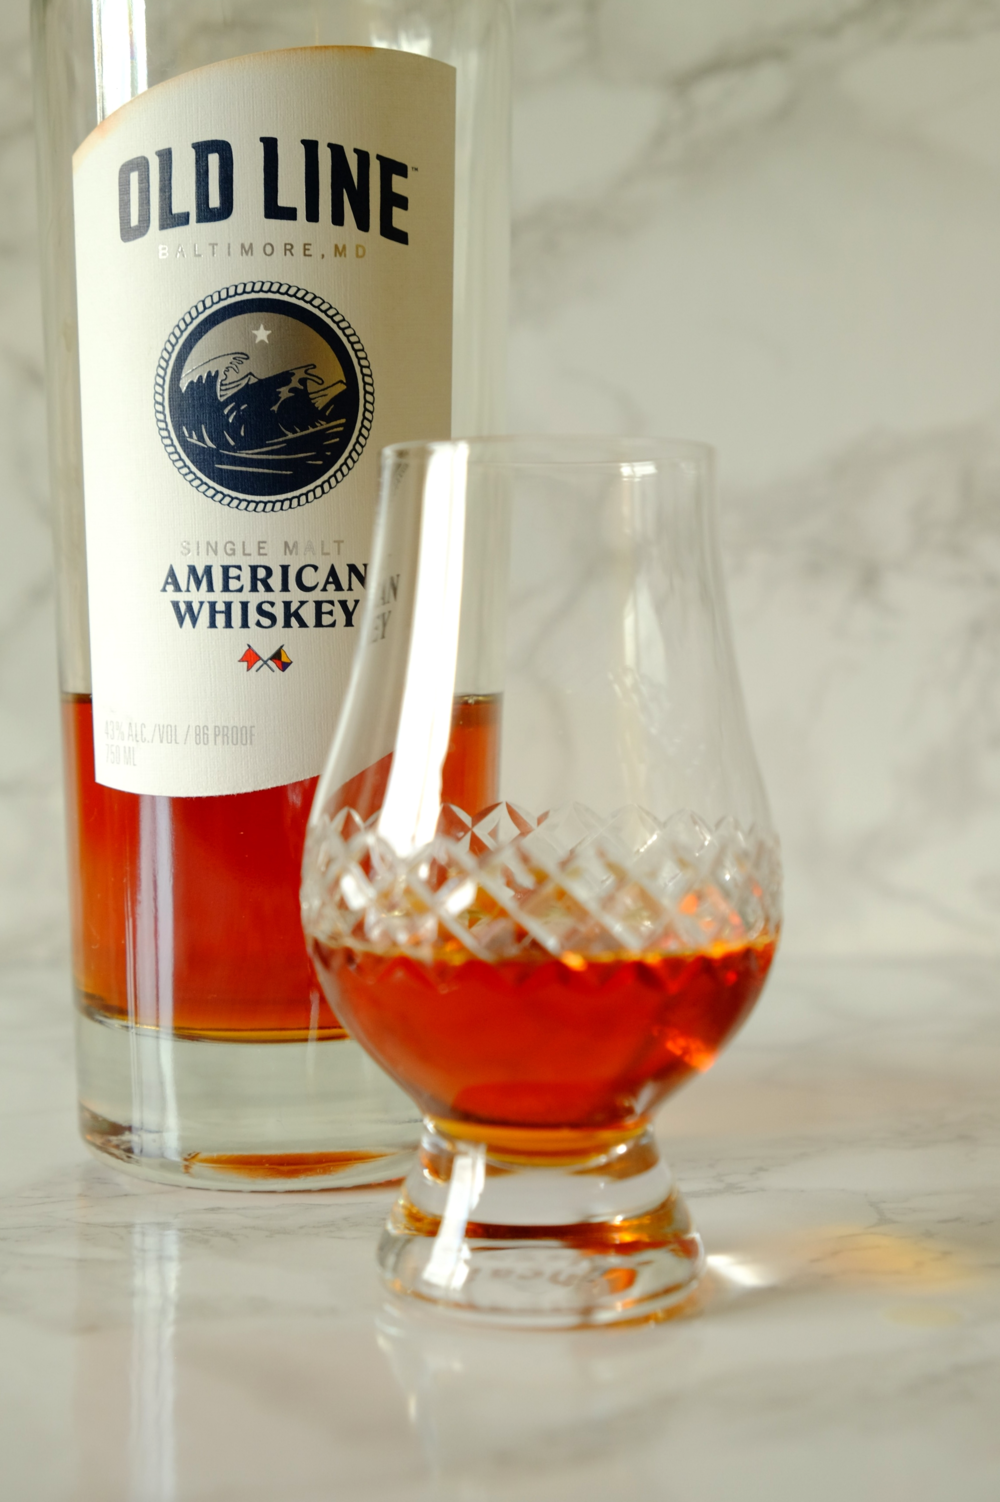 Old Line American Whiskey